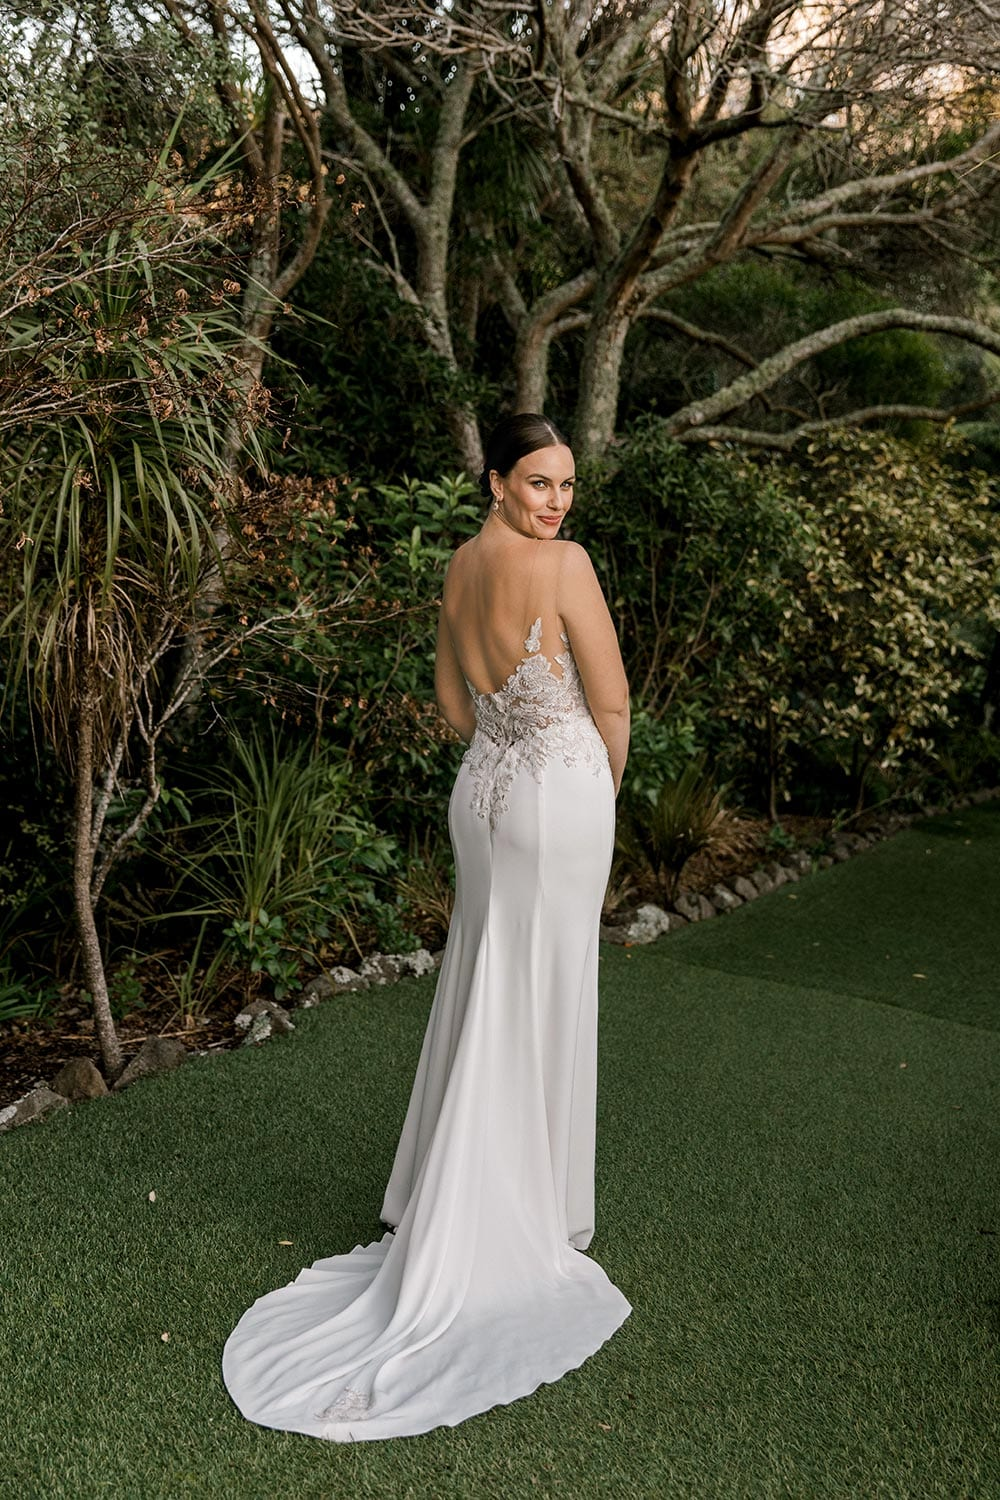 Samantha Wedding Dress from Vinka Design. This beautiful wedding dress has a nude sheer illusion strapless neckline made from fine Italian tulle. Low sheer back & structured bodice, & soft crepe train. Full length dress from the back with train extended. Photographed in Landscaped garden.